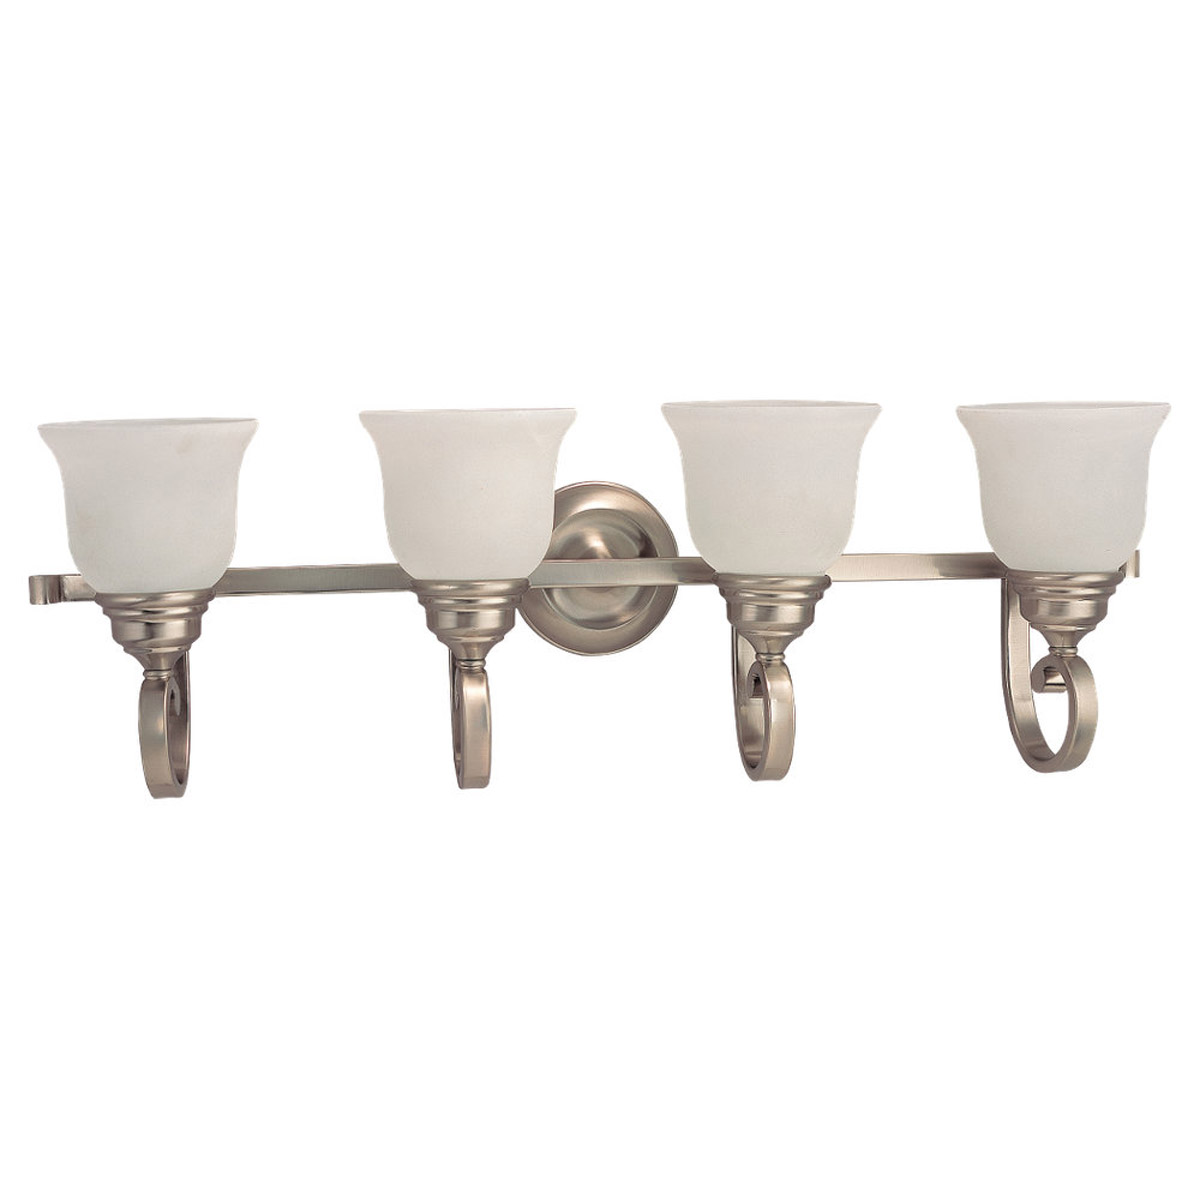 Sea Gull Lighting Serenity 4 Light Bath Vanity in Brushed Nickel 49061BLE-962 photo